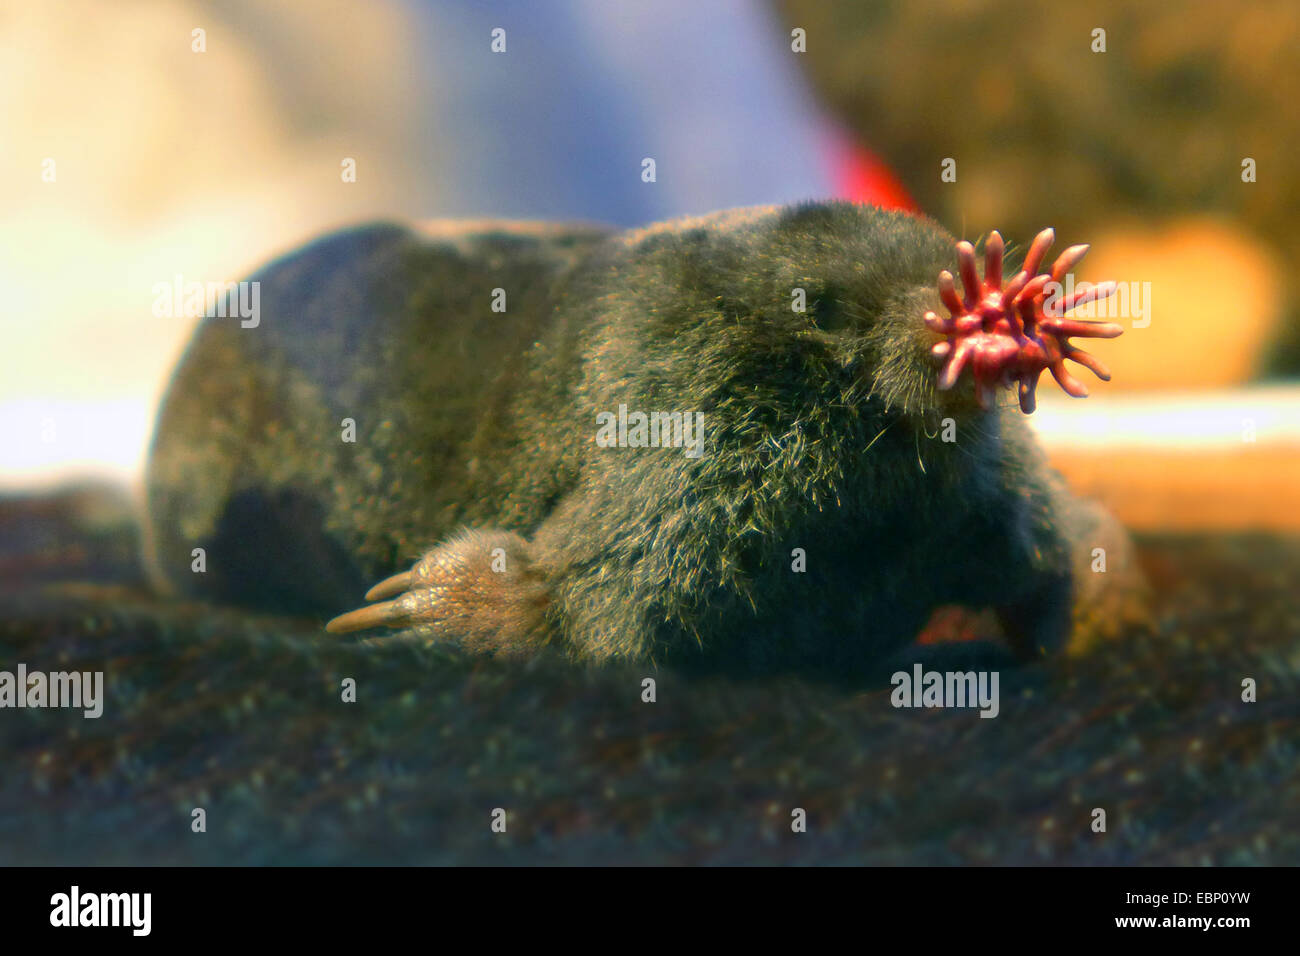 Star-nosed mole (Condylura cristata), snout with pink fleshy appendages used as a touch organ Stock Photo